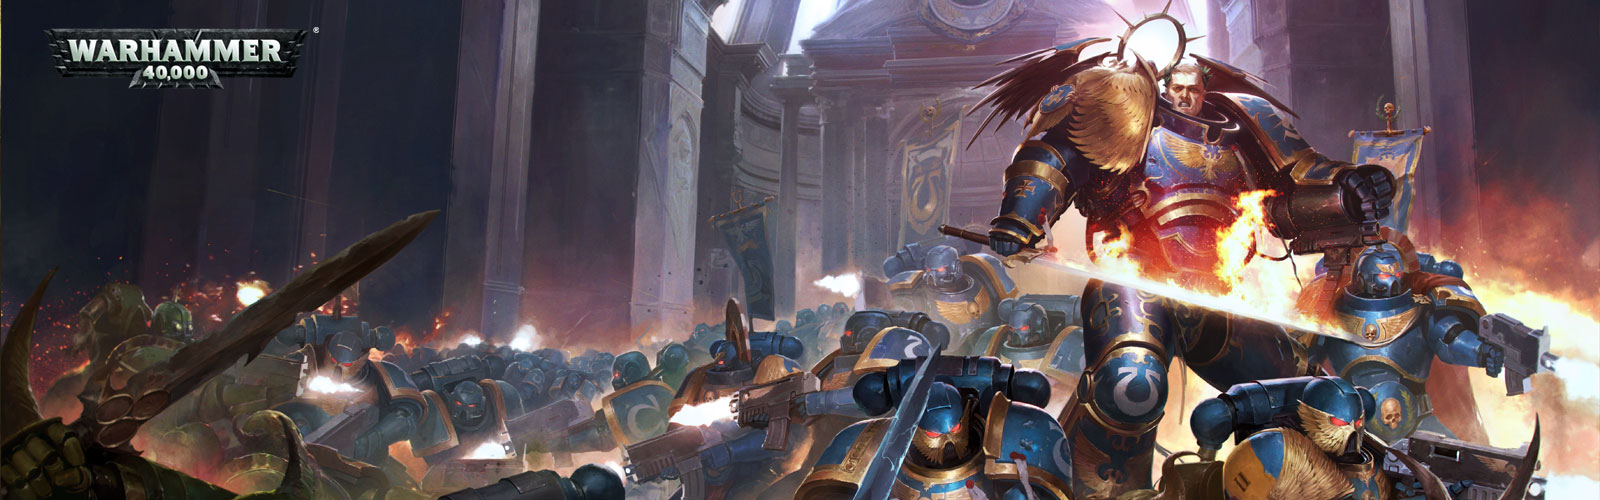 WARHAMMER ART- The official collection of iconic artwork